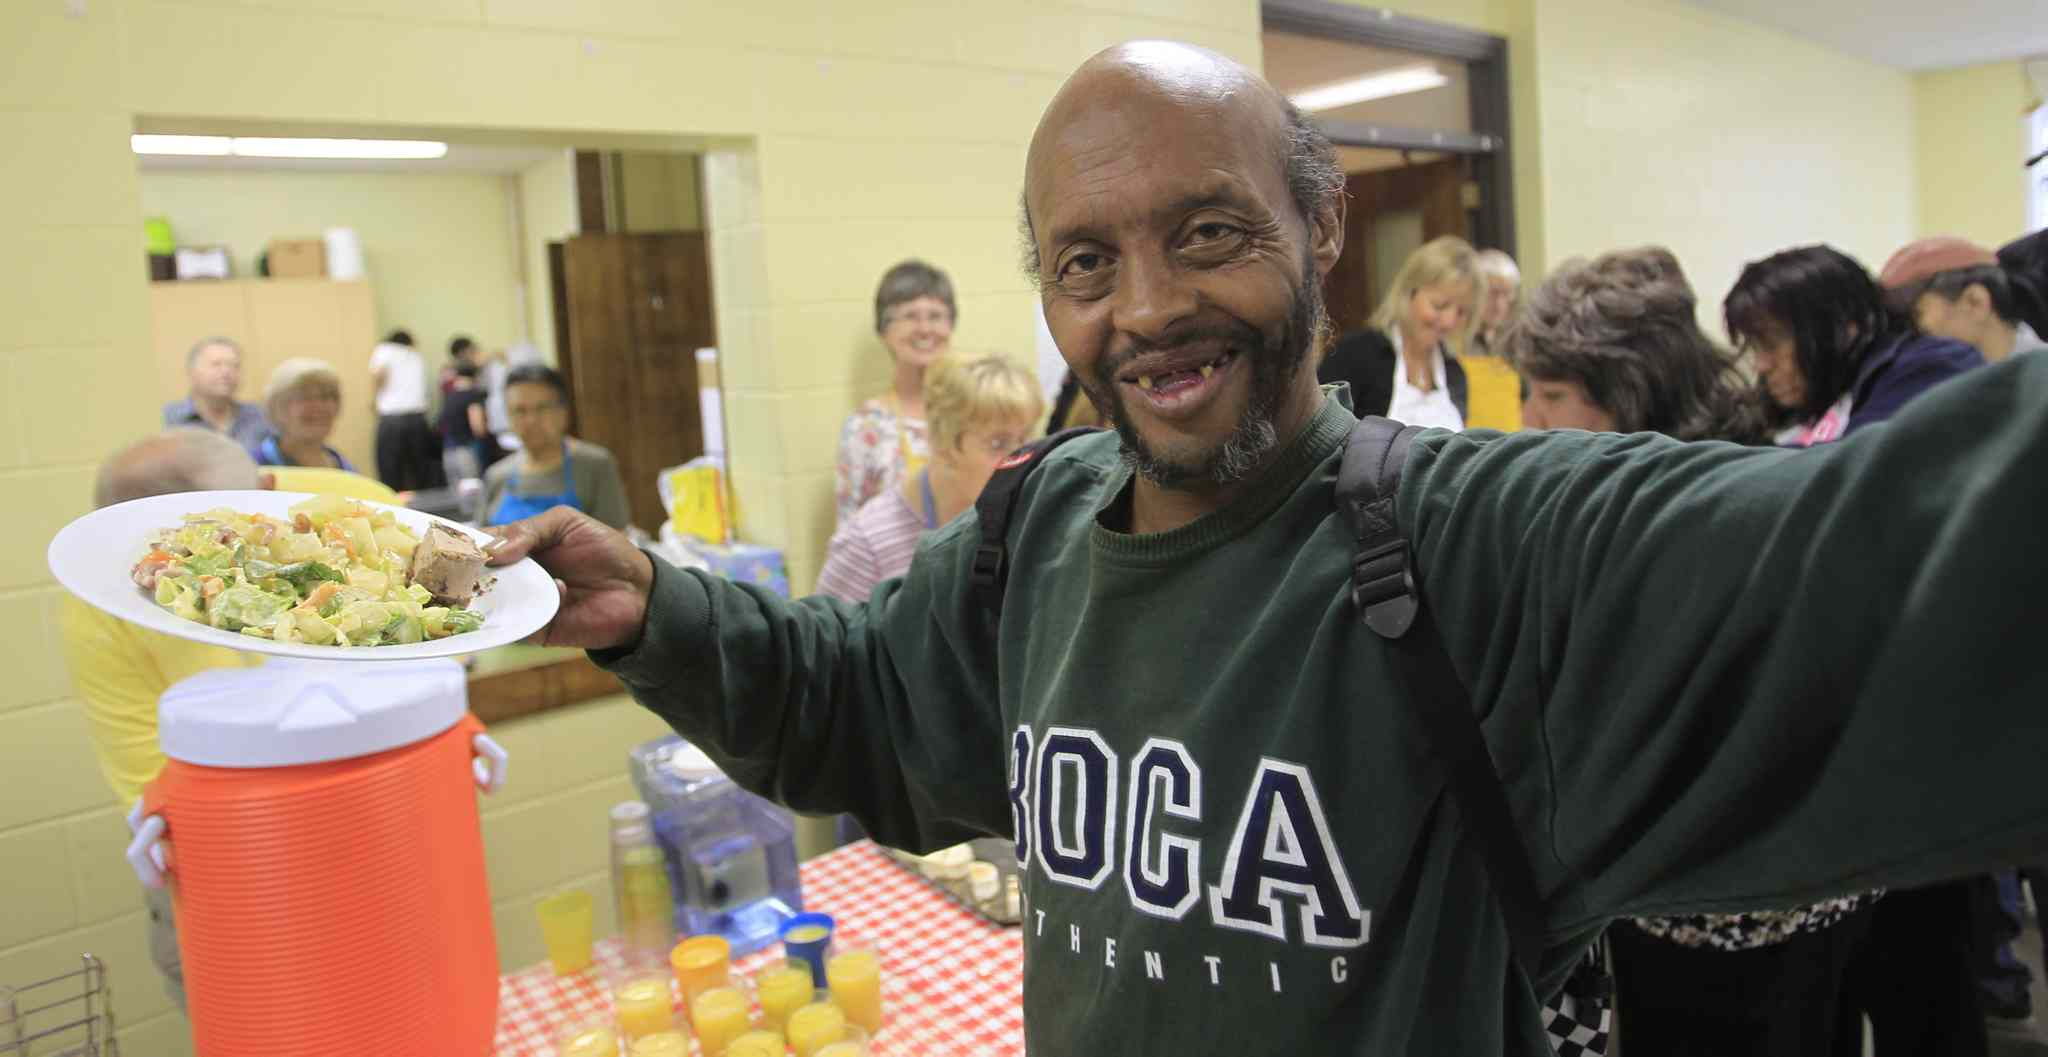 The congregation may be gone, but Trinity Lutheran Church is still a popular meeting place. On a recent Friday at the building, Simba gets a hot lunch provided by Secret Place Ministry.